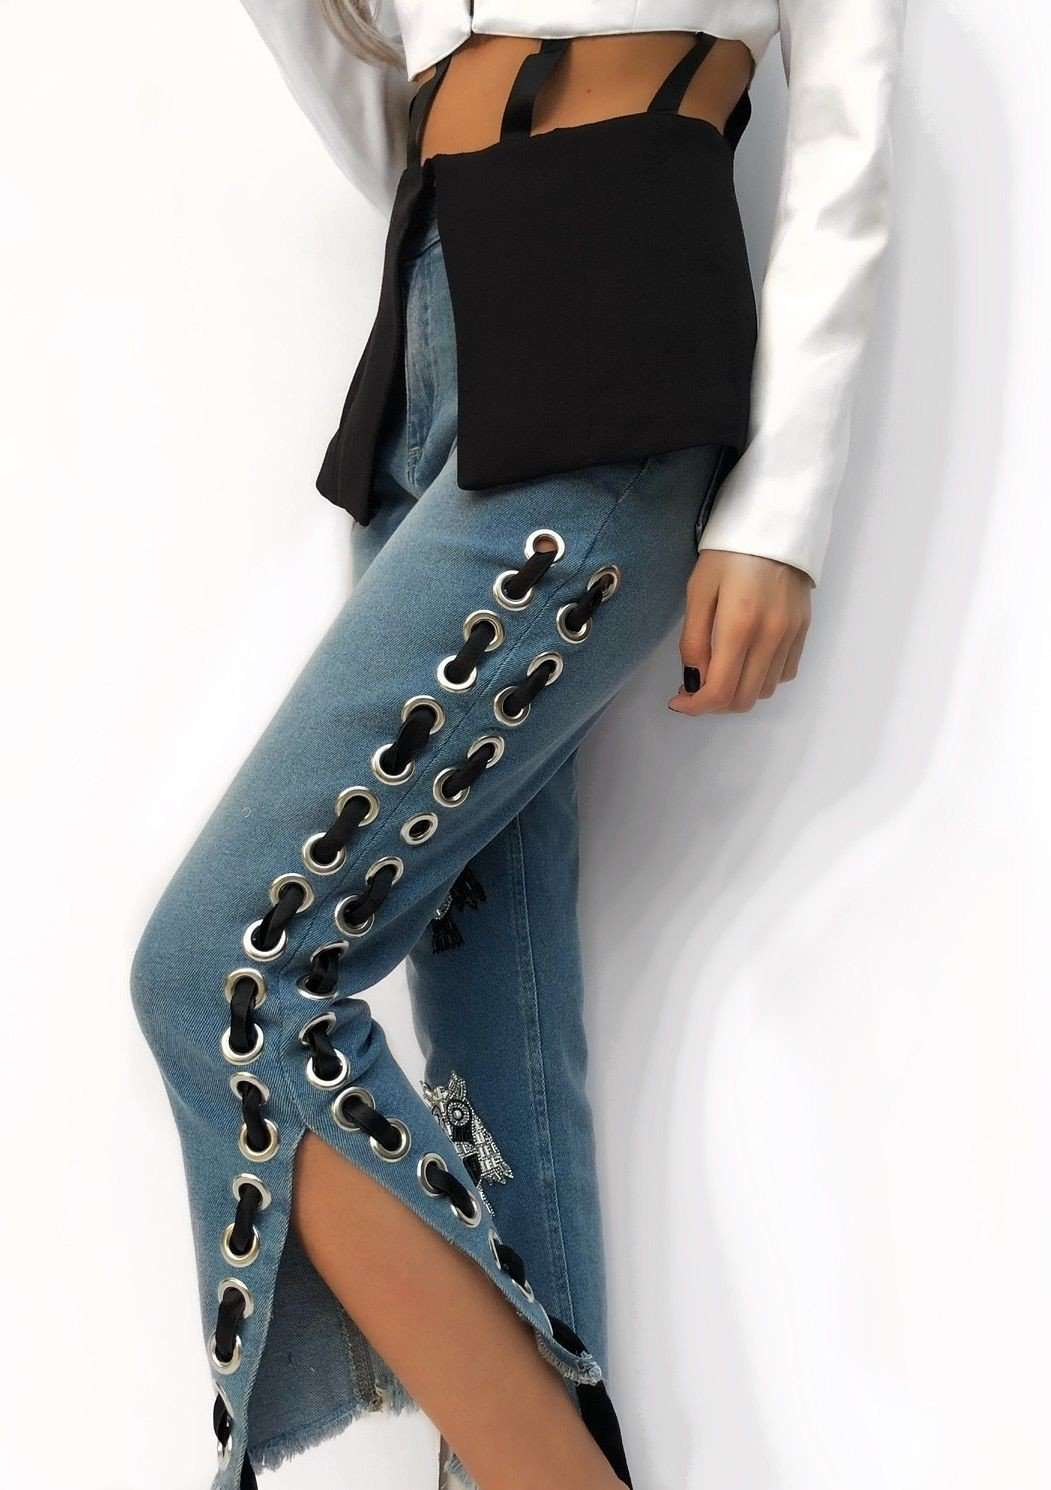 jeans hibou,Posh couture, Curated Designer at Freesigners.com